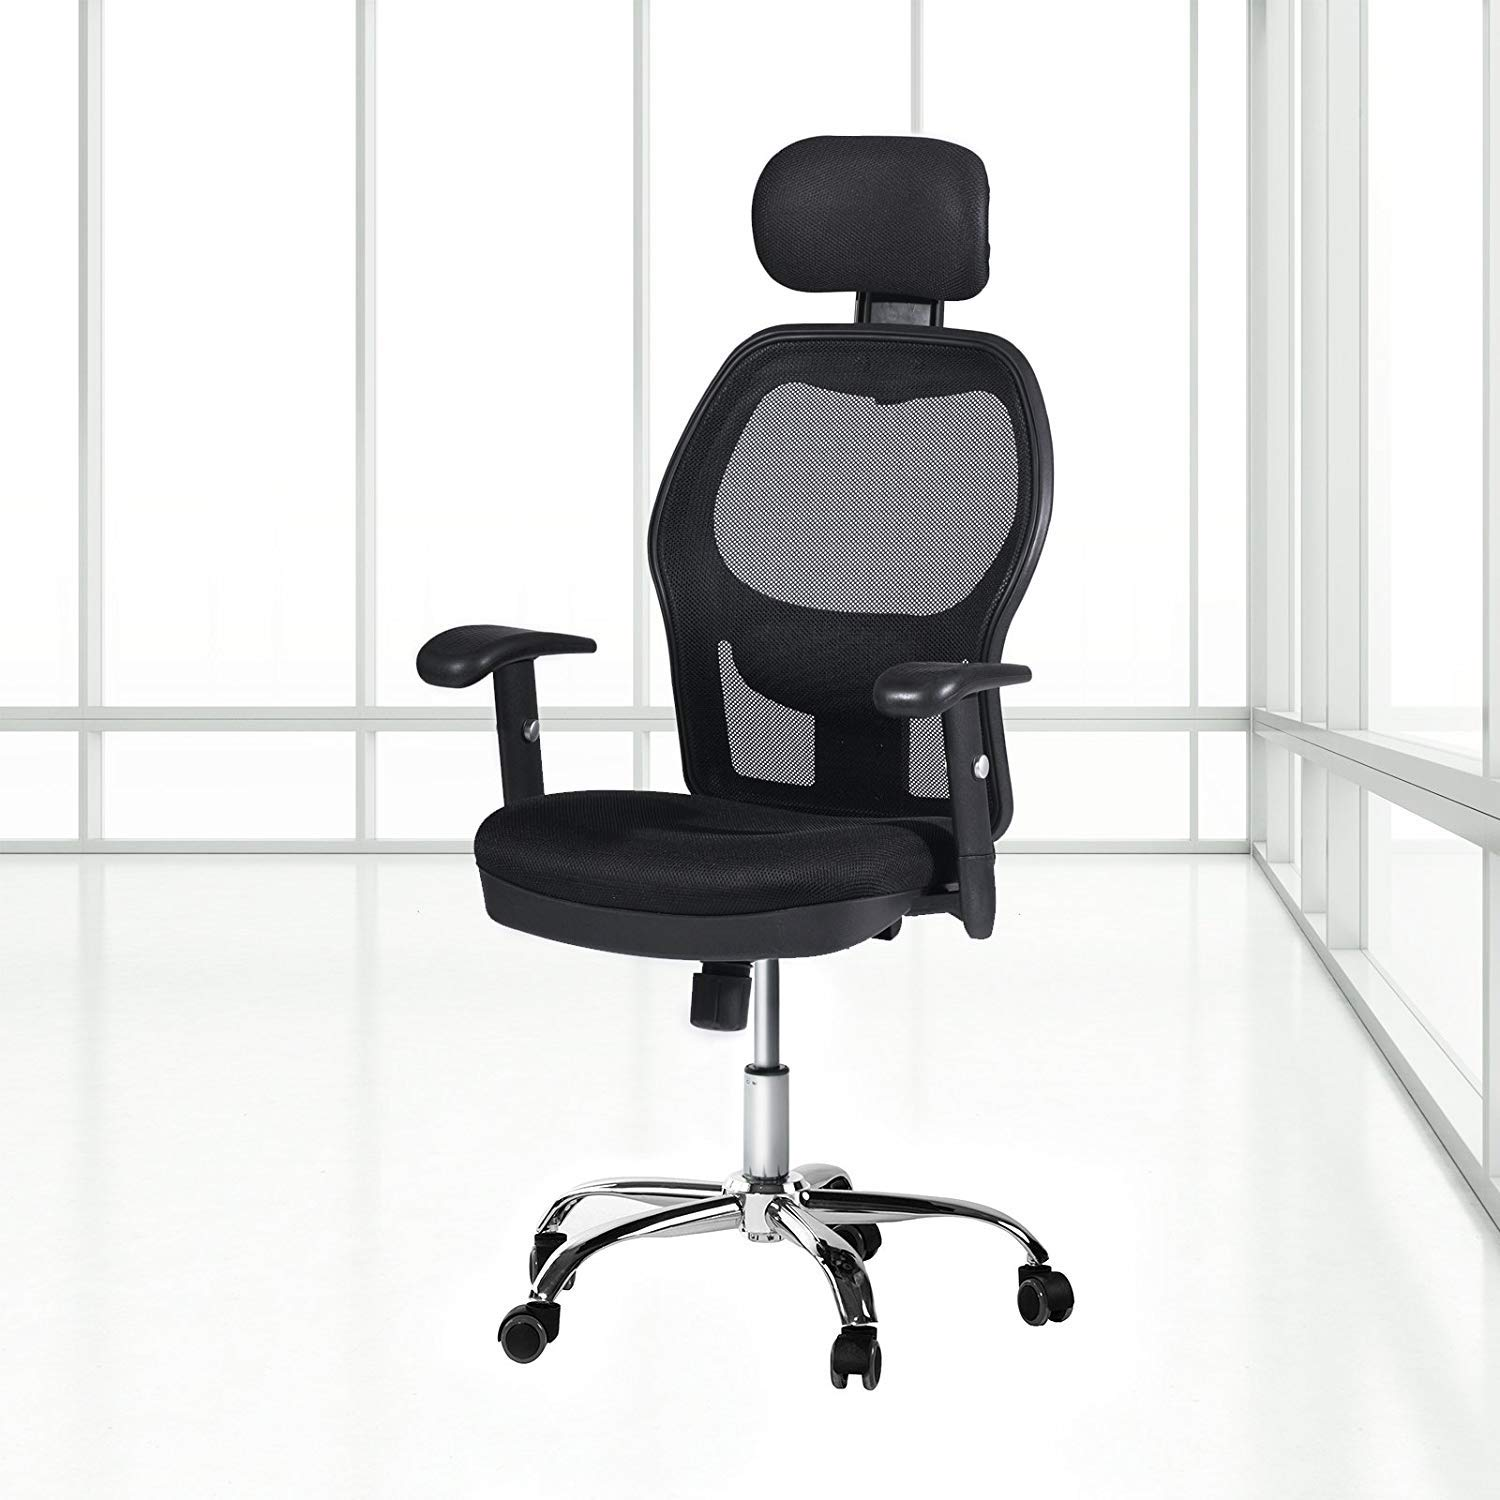 Winmi High Back Mesh Ergonomic Office Chair with Headrest and Armrest, 360 Degree Swivel Executive Computer Desk Task Chair,Back Lumbar Support, Black by Winmi (Image #7)